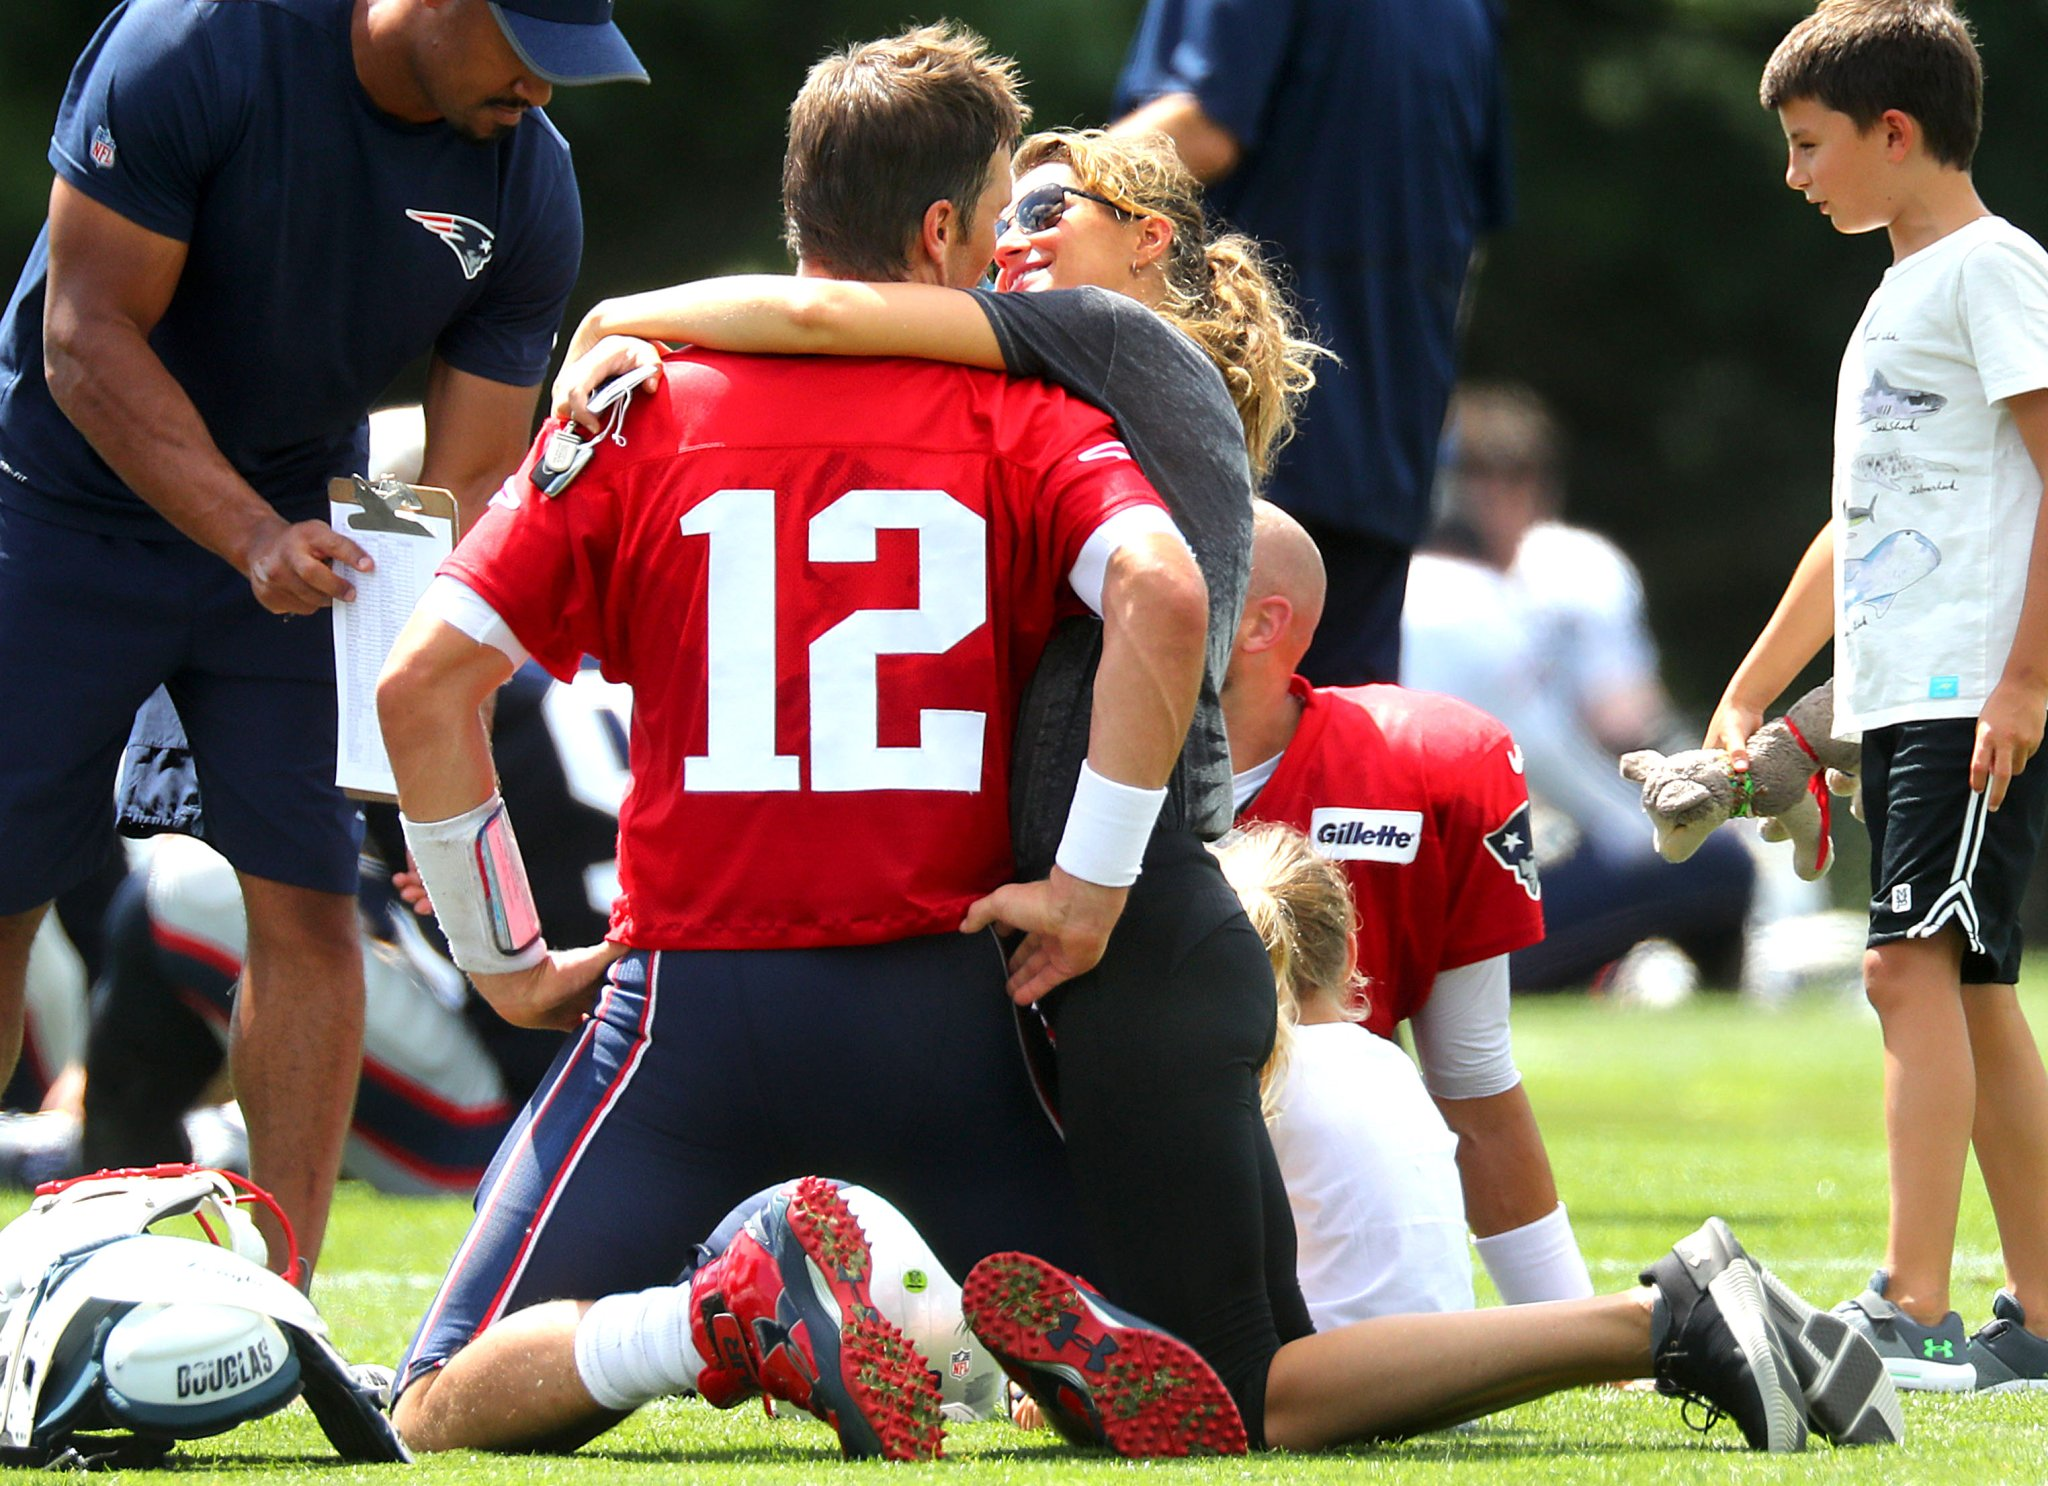 Brady's Wife Gisele Reportedly Went Off On Robert Kraft About How Belichick Was Mistreating Tom - BroBible